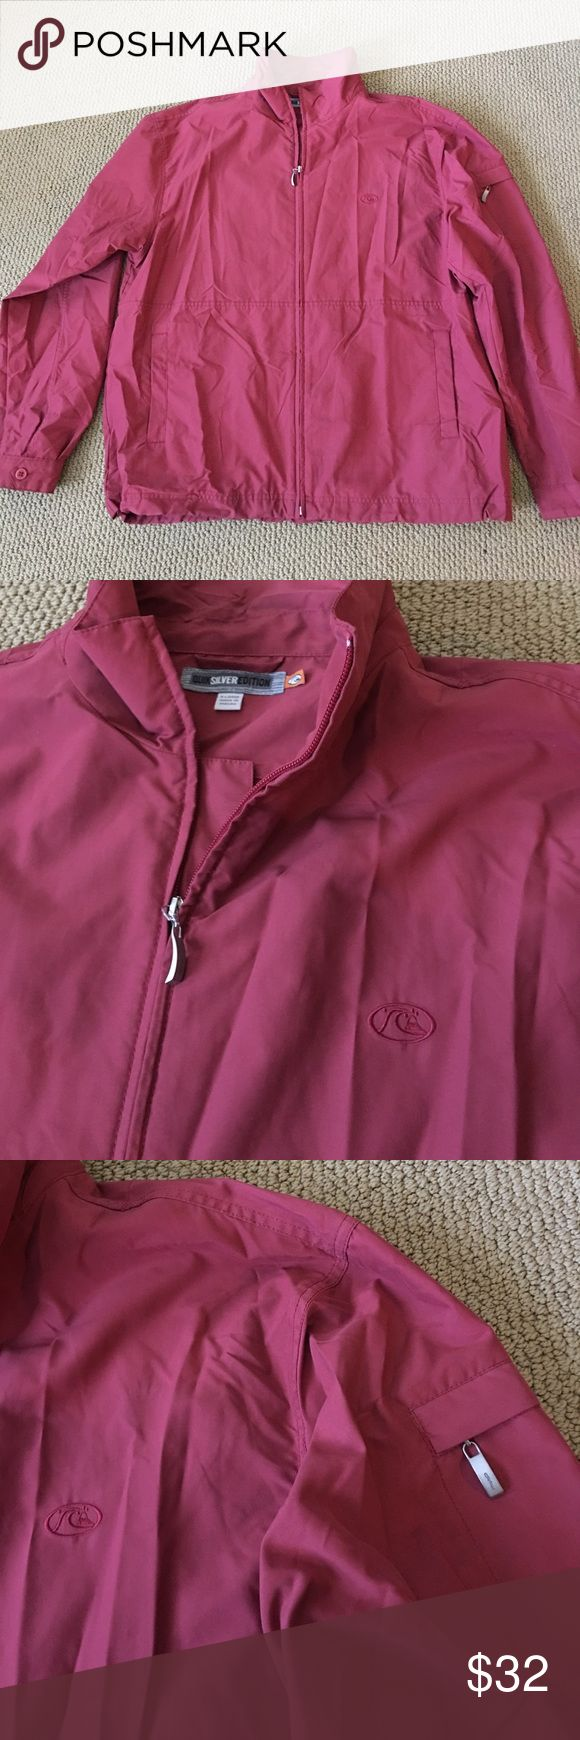 Quiksilver Edition Burgundy Zip Up Jacket XL Quiksilver Edition Zip Up Jacket  Size XL 100% Polyester  Two Front Pockets, Two Interior Pockets Armpit to armpit 25 in Armpit to end of sleeve 22 in Shoulder to hem 28 in Thanks for visiting! Quiksilver Jackets & Coats Lightweight & Shirt Jackets